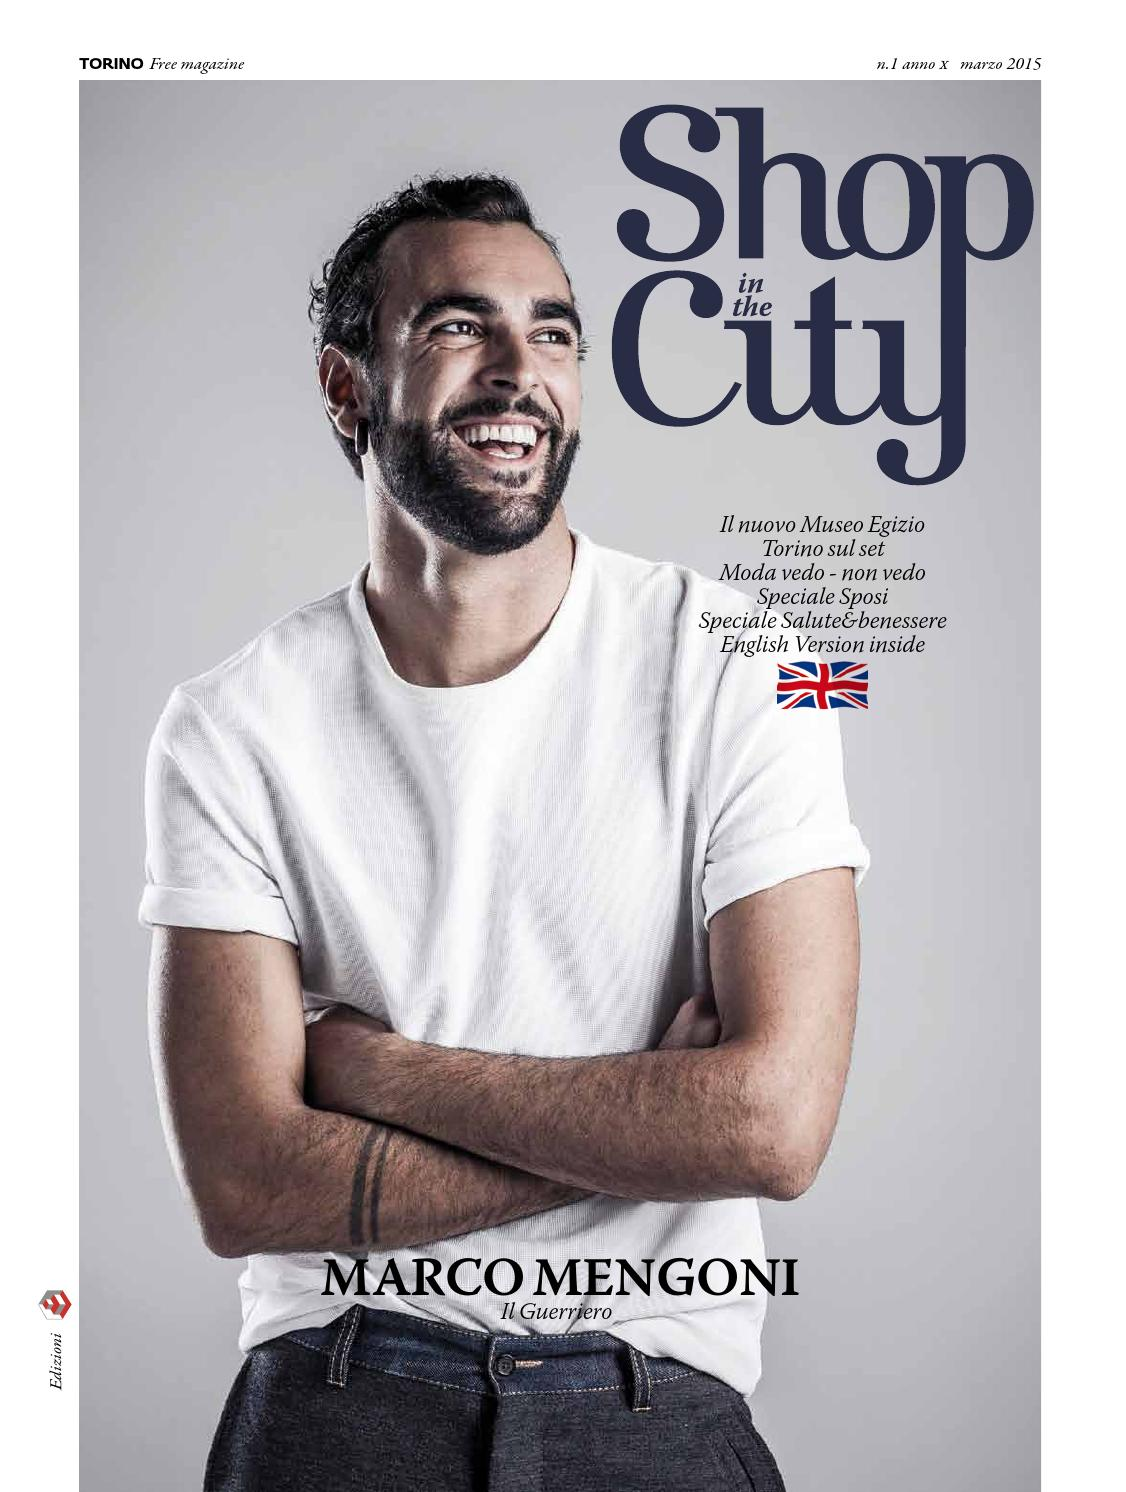 Shop in the City marzo 2015 by ShopintheCity - issuu 0d1ebb617c6